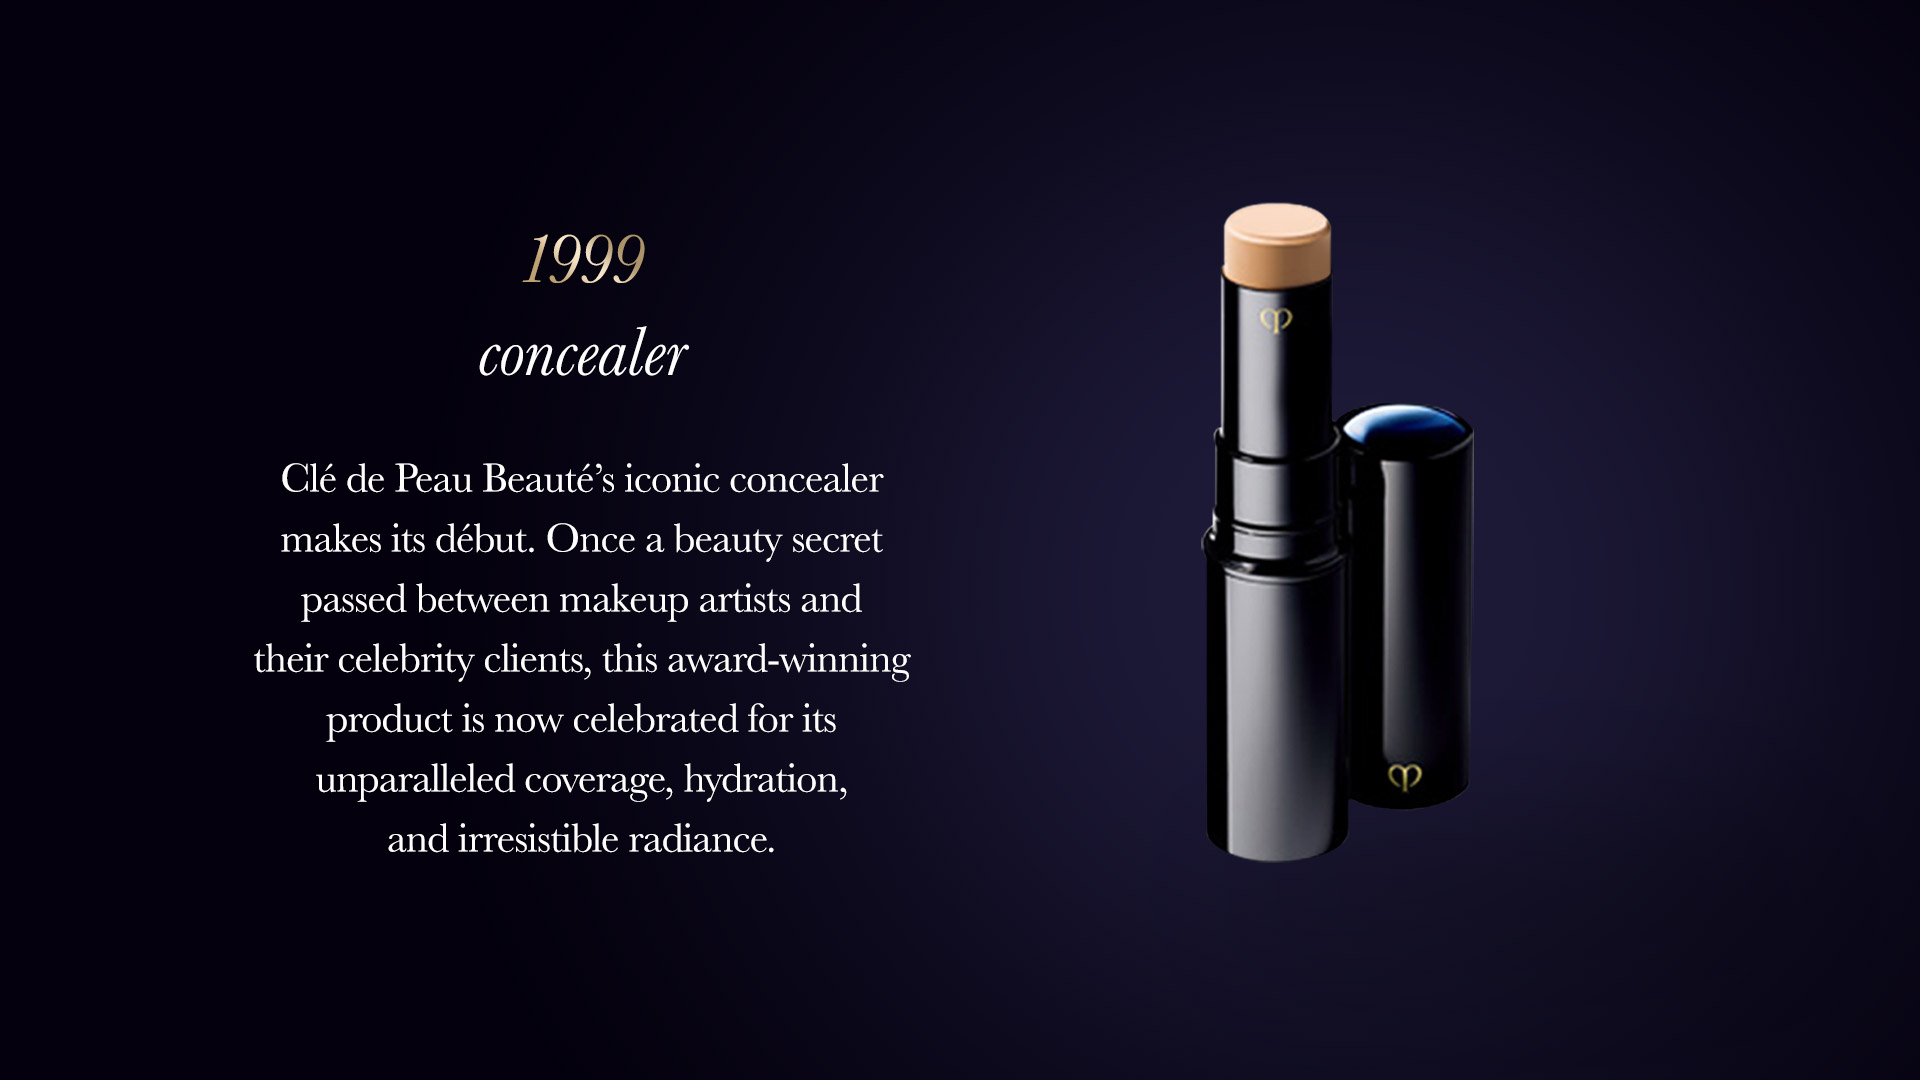 Clé de Peau Beauté's iconic Concealer makes its début. Once a beauty secret passed between makeup artists and their celebrity clients, this award-winning product is now celebrated for its unparalleled coverage, hydration, and irresistible radiance.